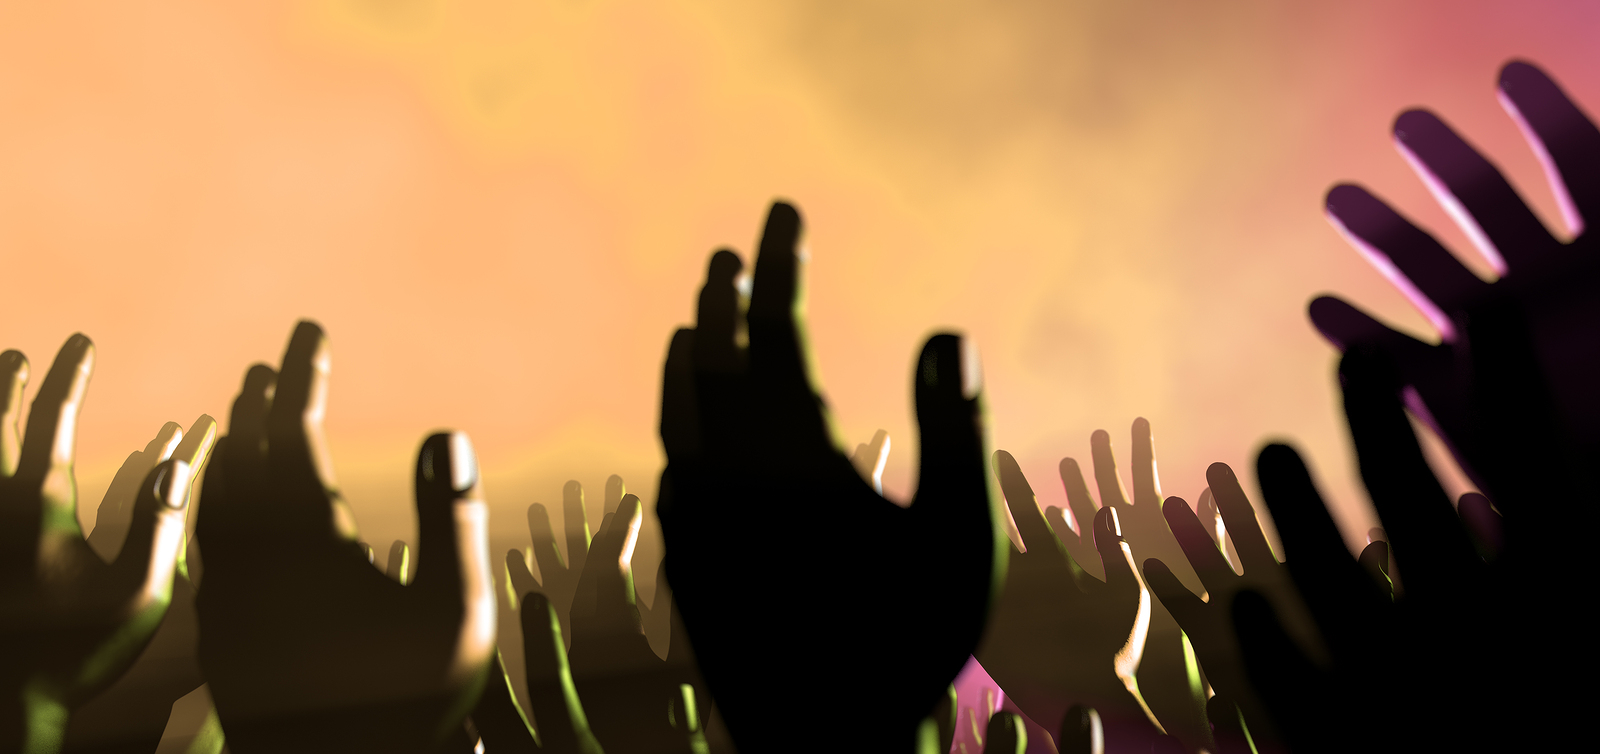 bigstock-Audience-Hands-And-Lights-At-C-61953626.jpg